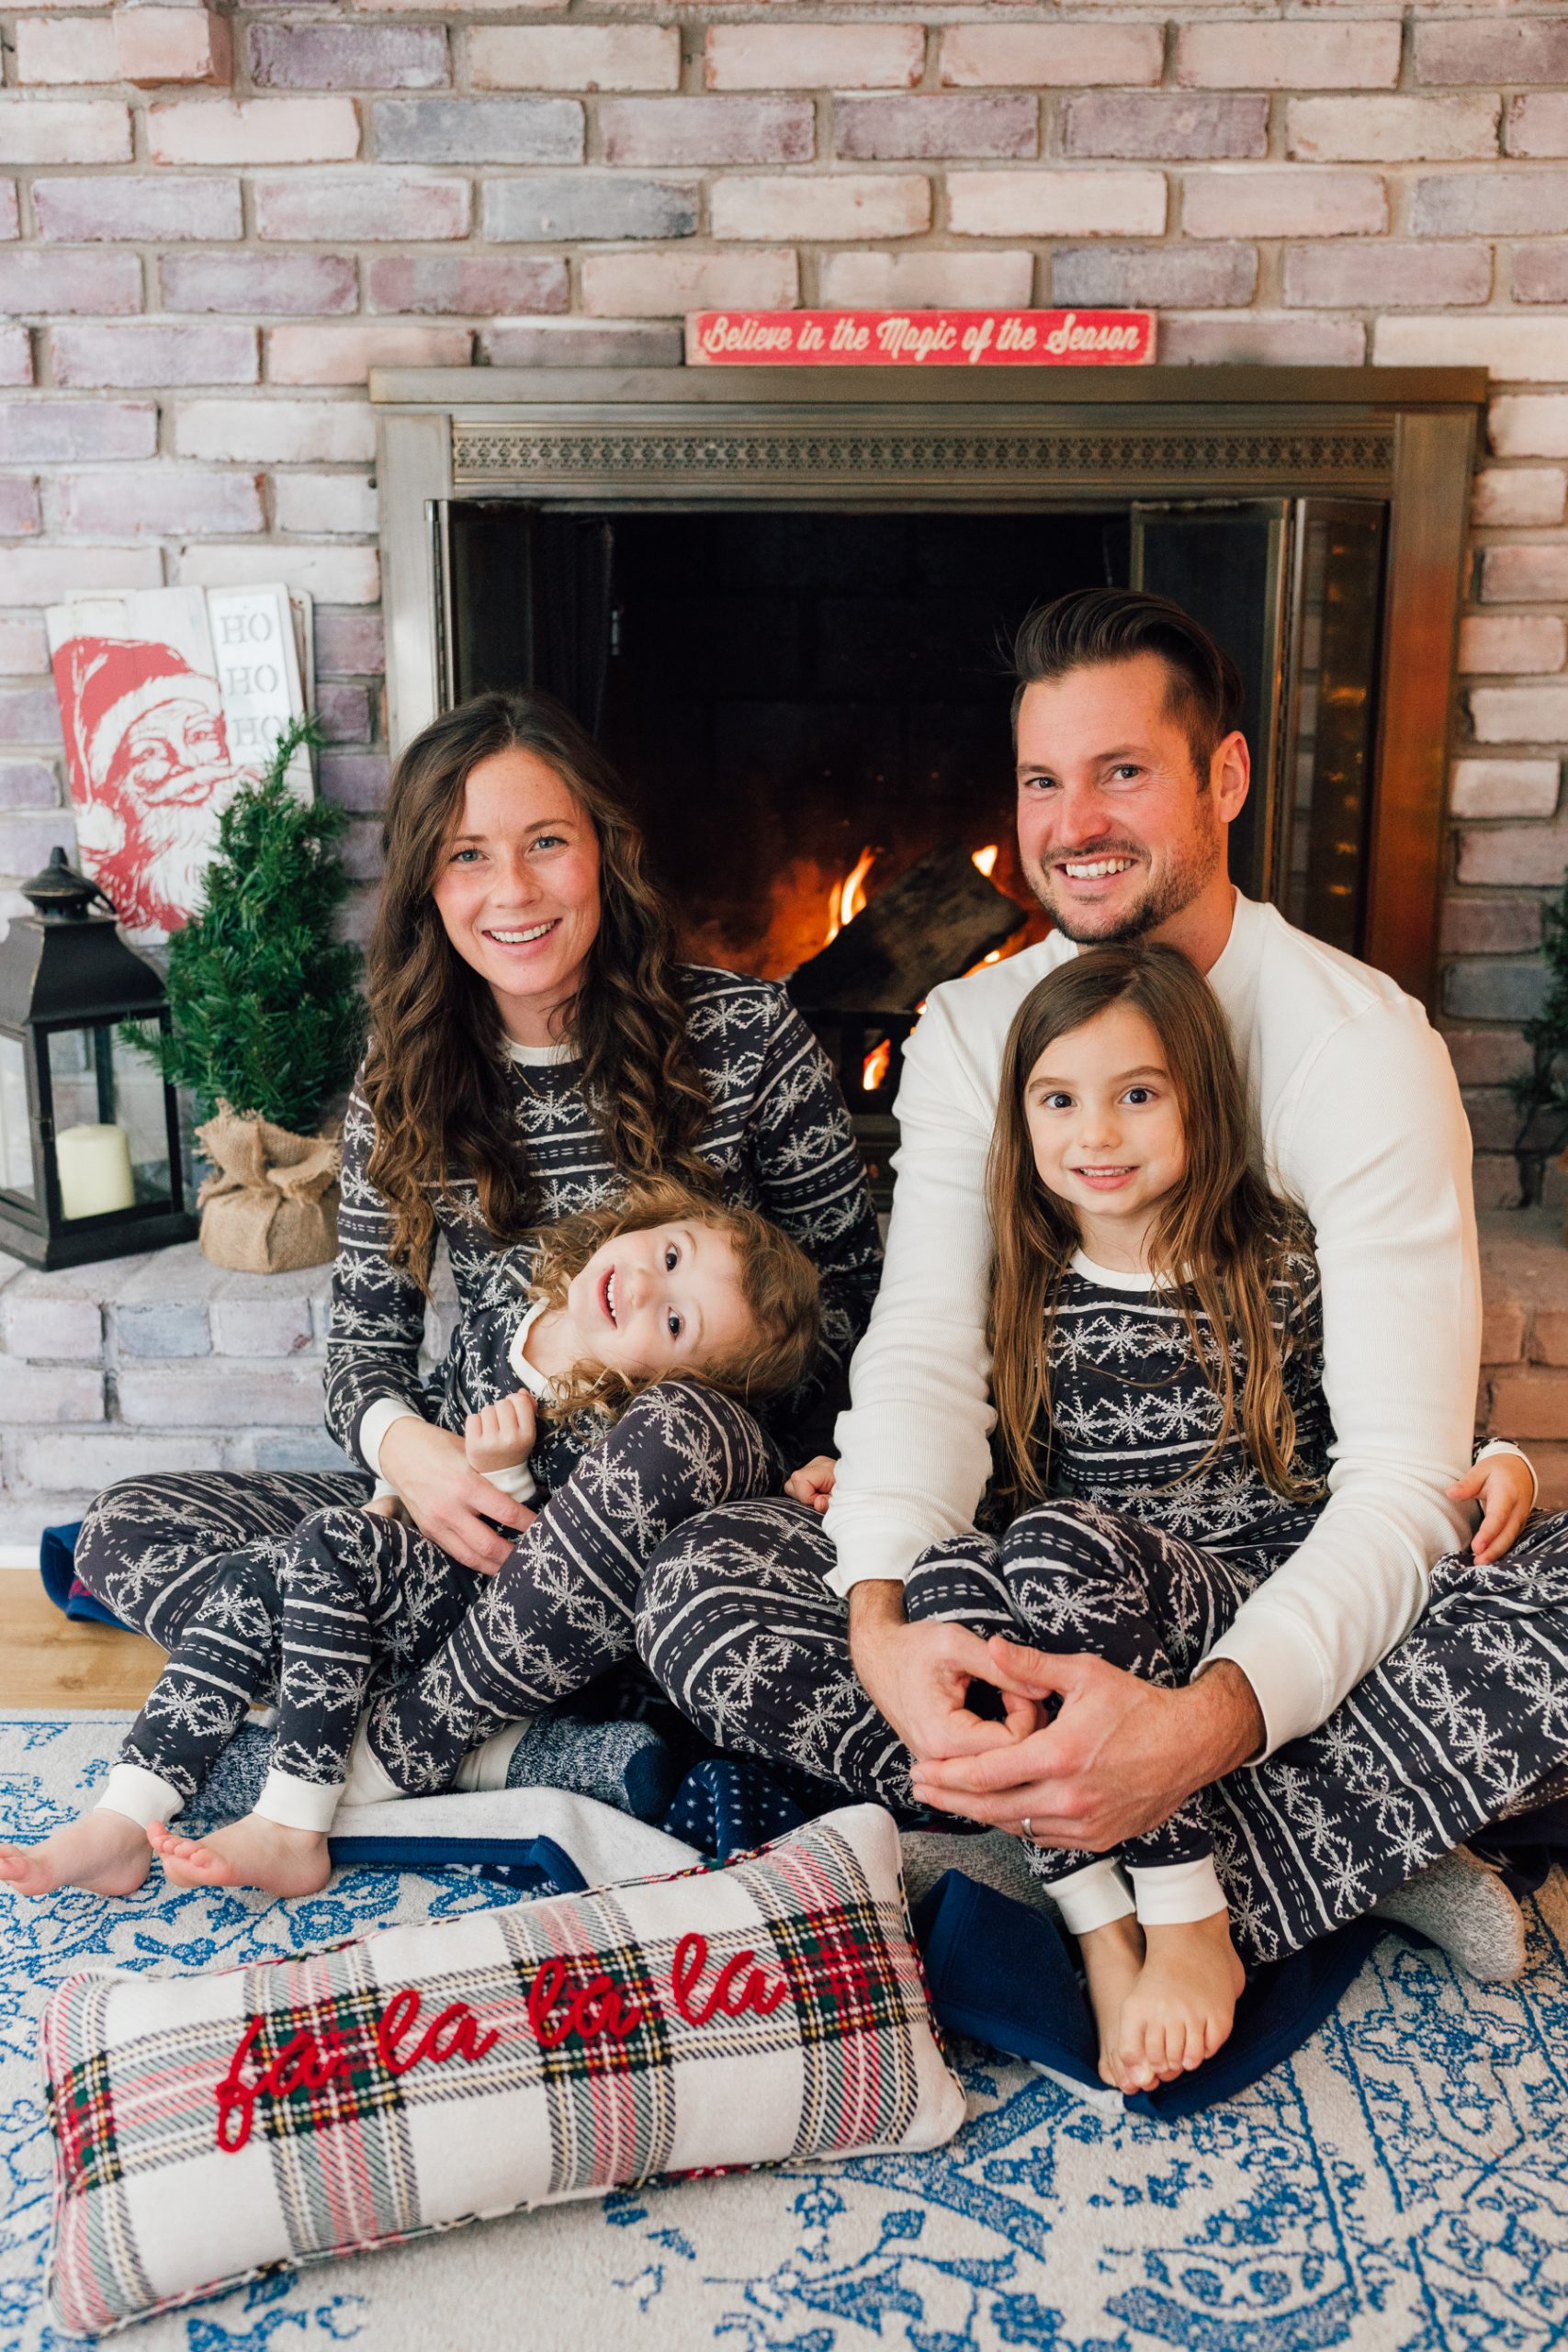 What to Wear for Family Holiday Photos - Matching Christmas Pajamas